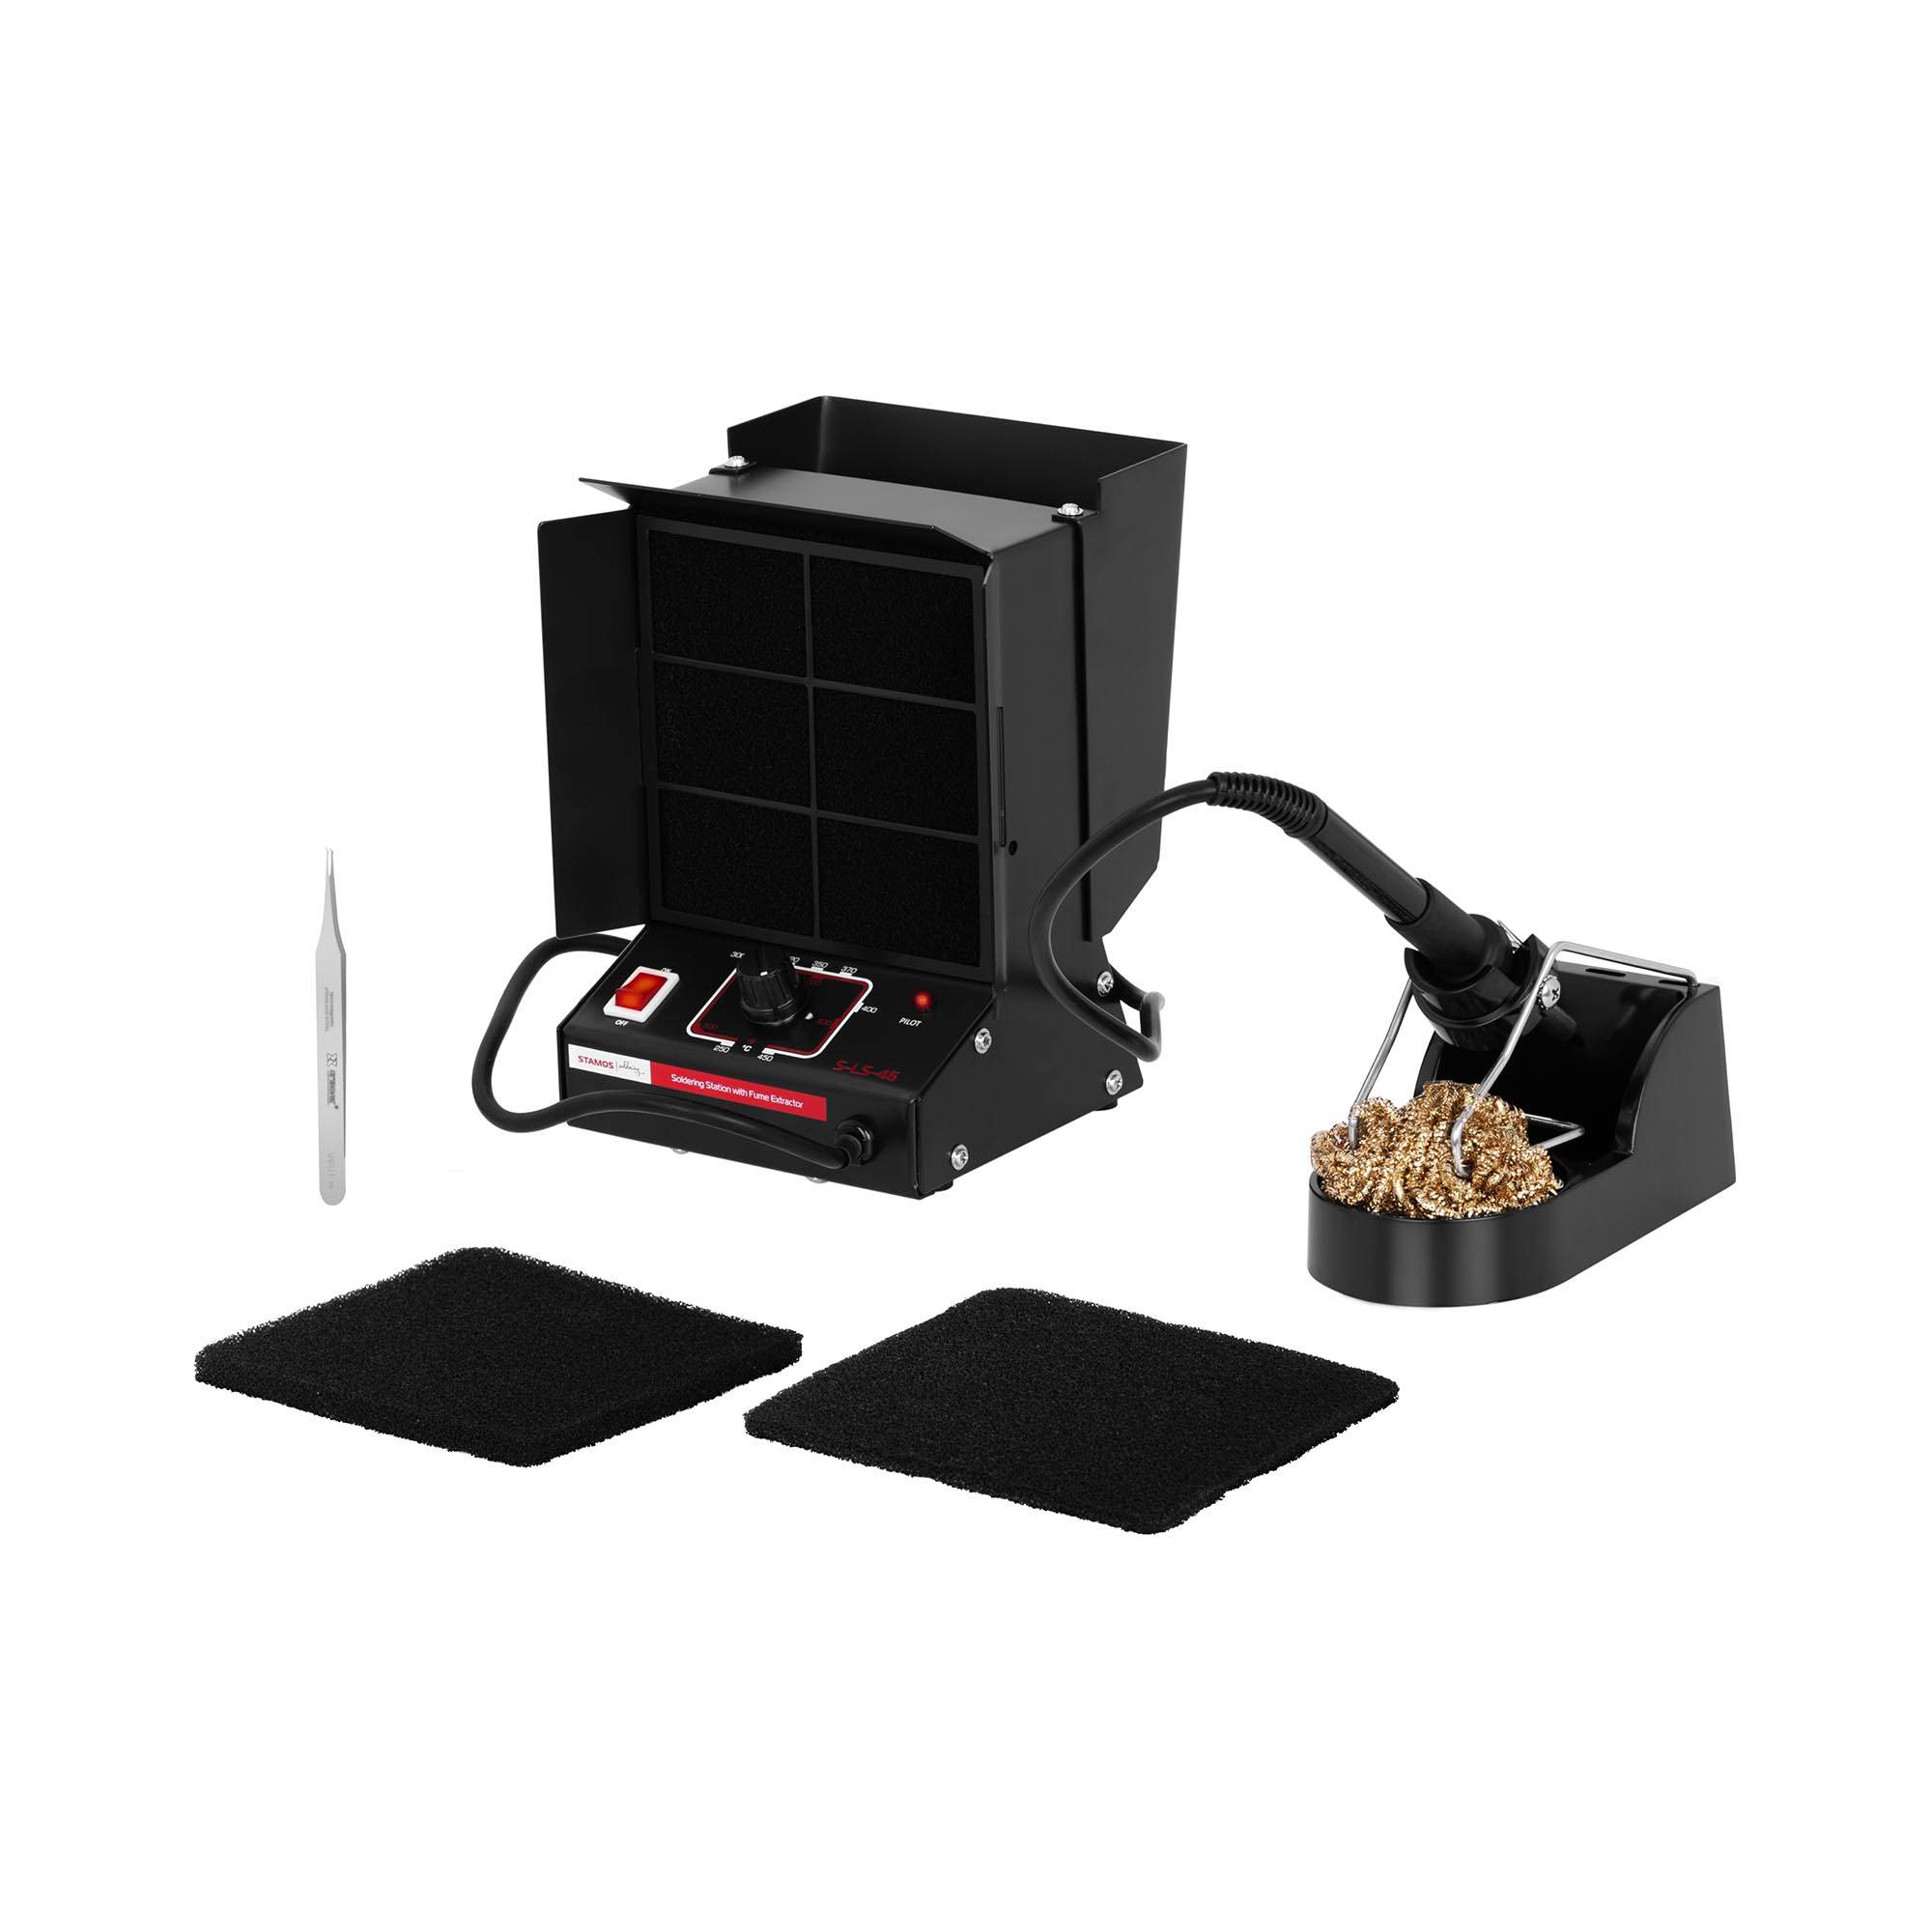 Stamos Soldering Soldering Station with Fume Extractor